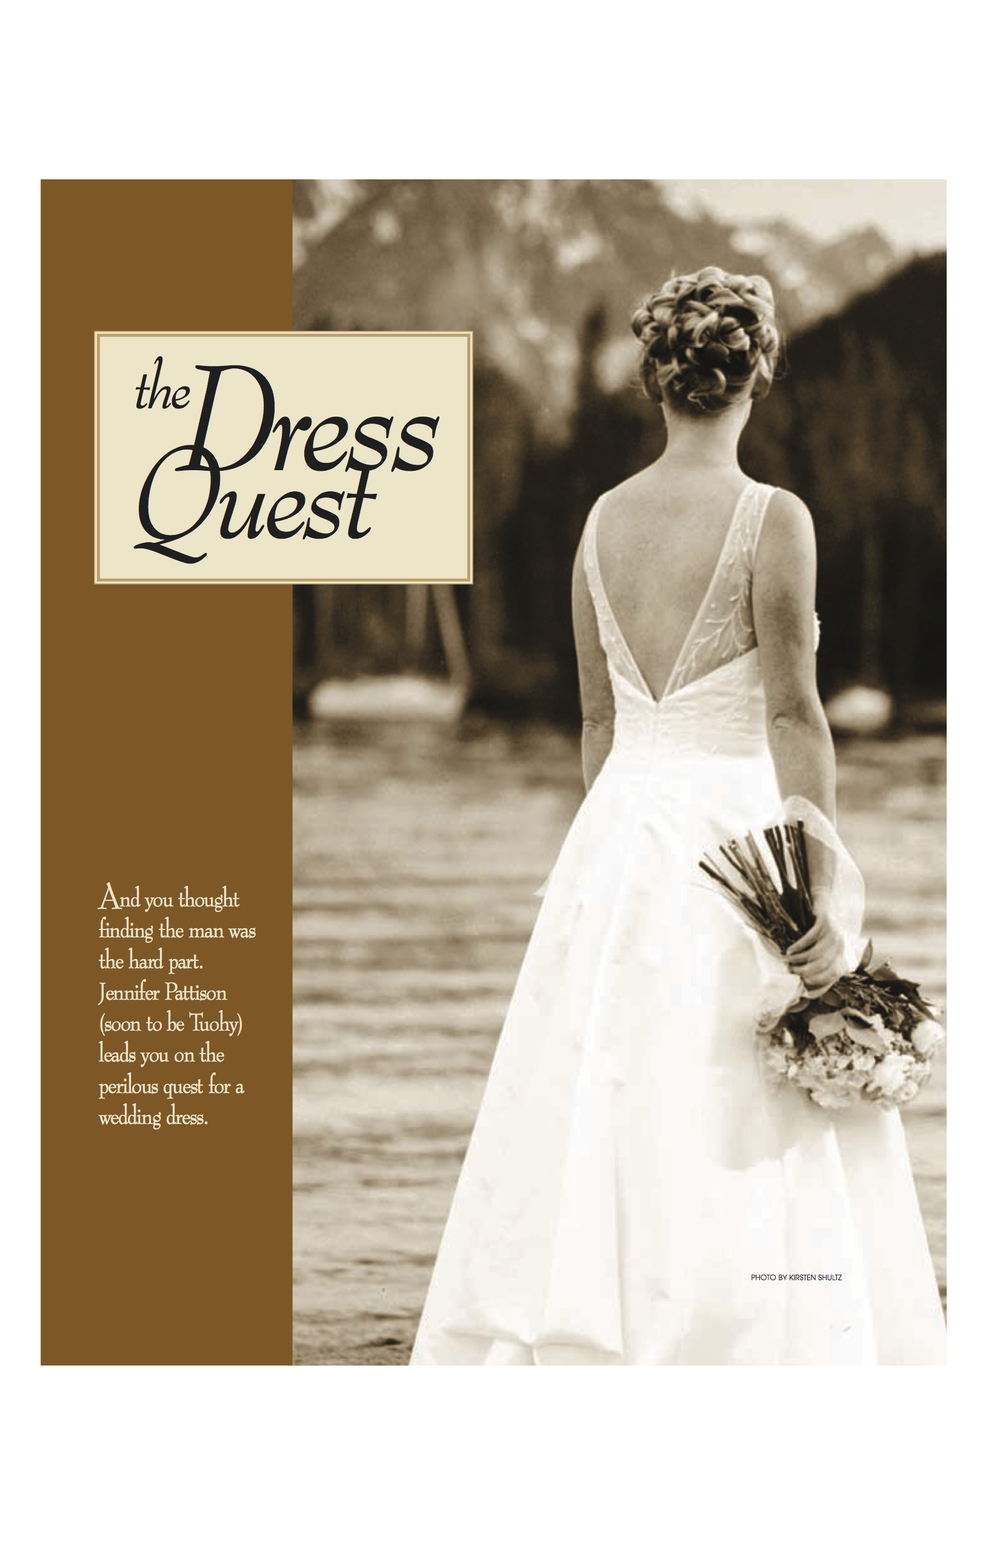 The Dress Quest